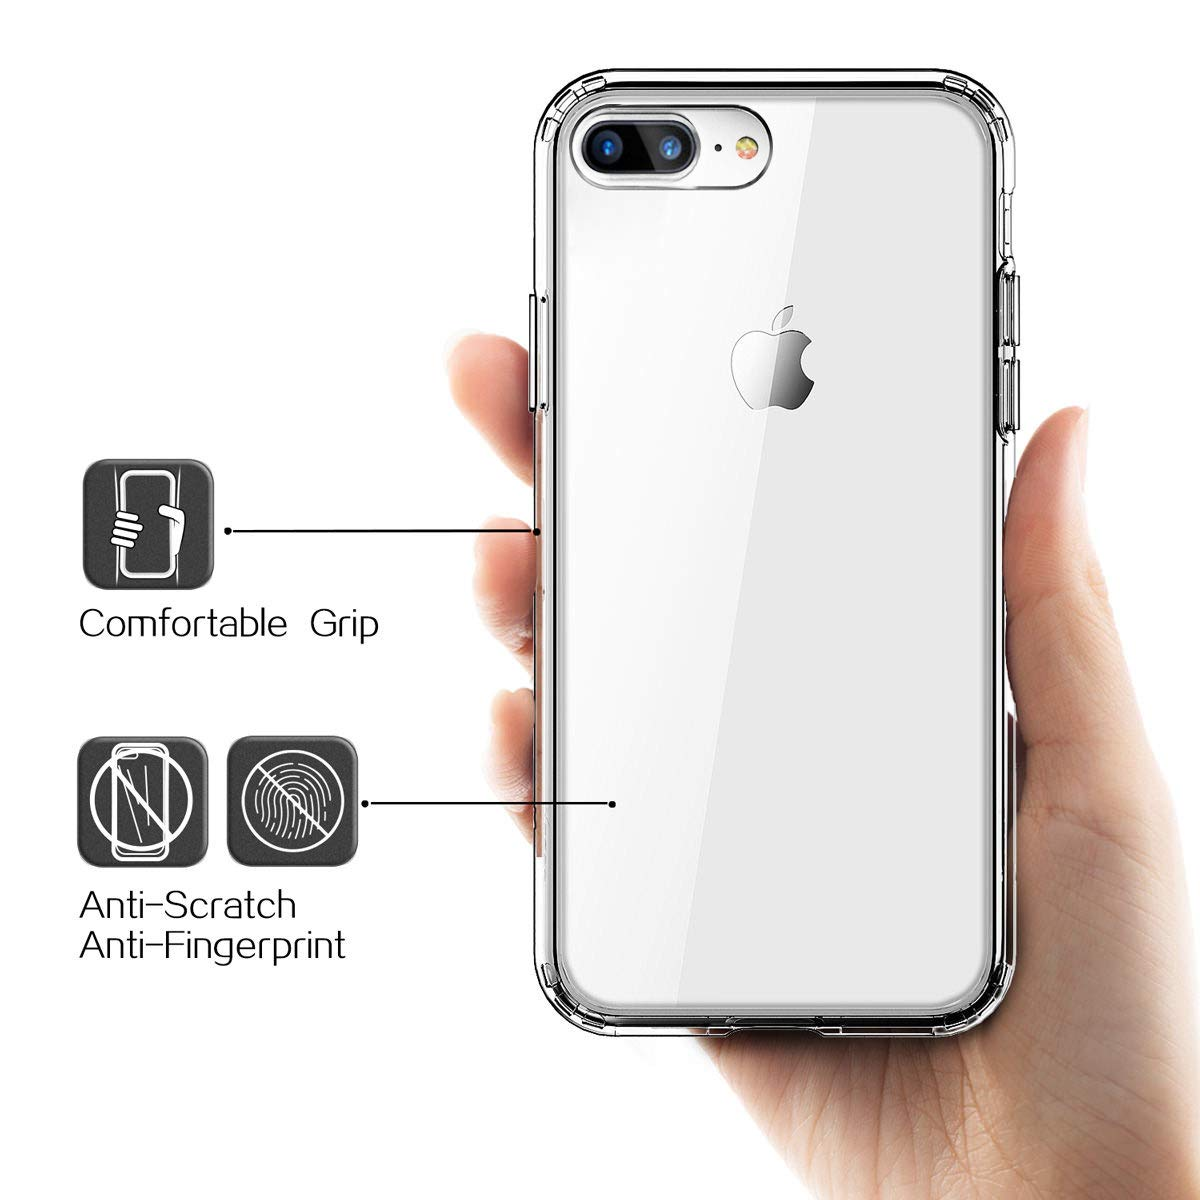 Amazon.com: Yesgo - Carcasa para iPhone 7 Plus, transparente ...